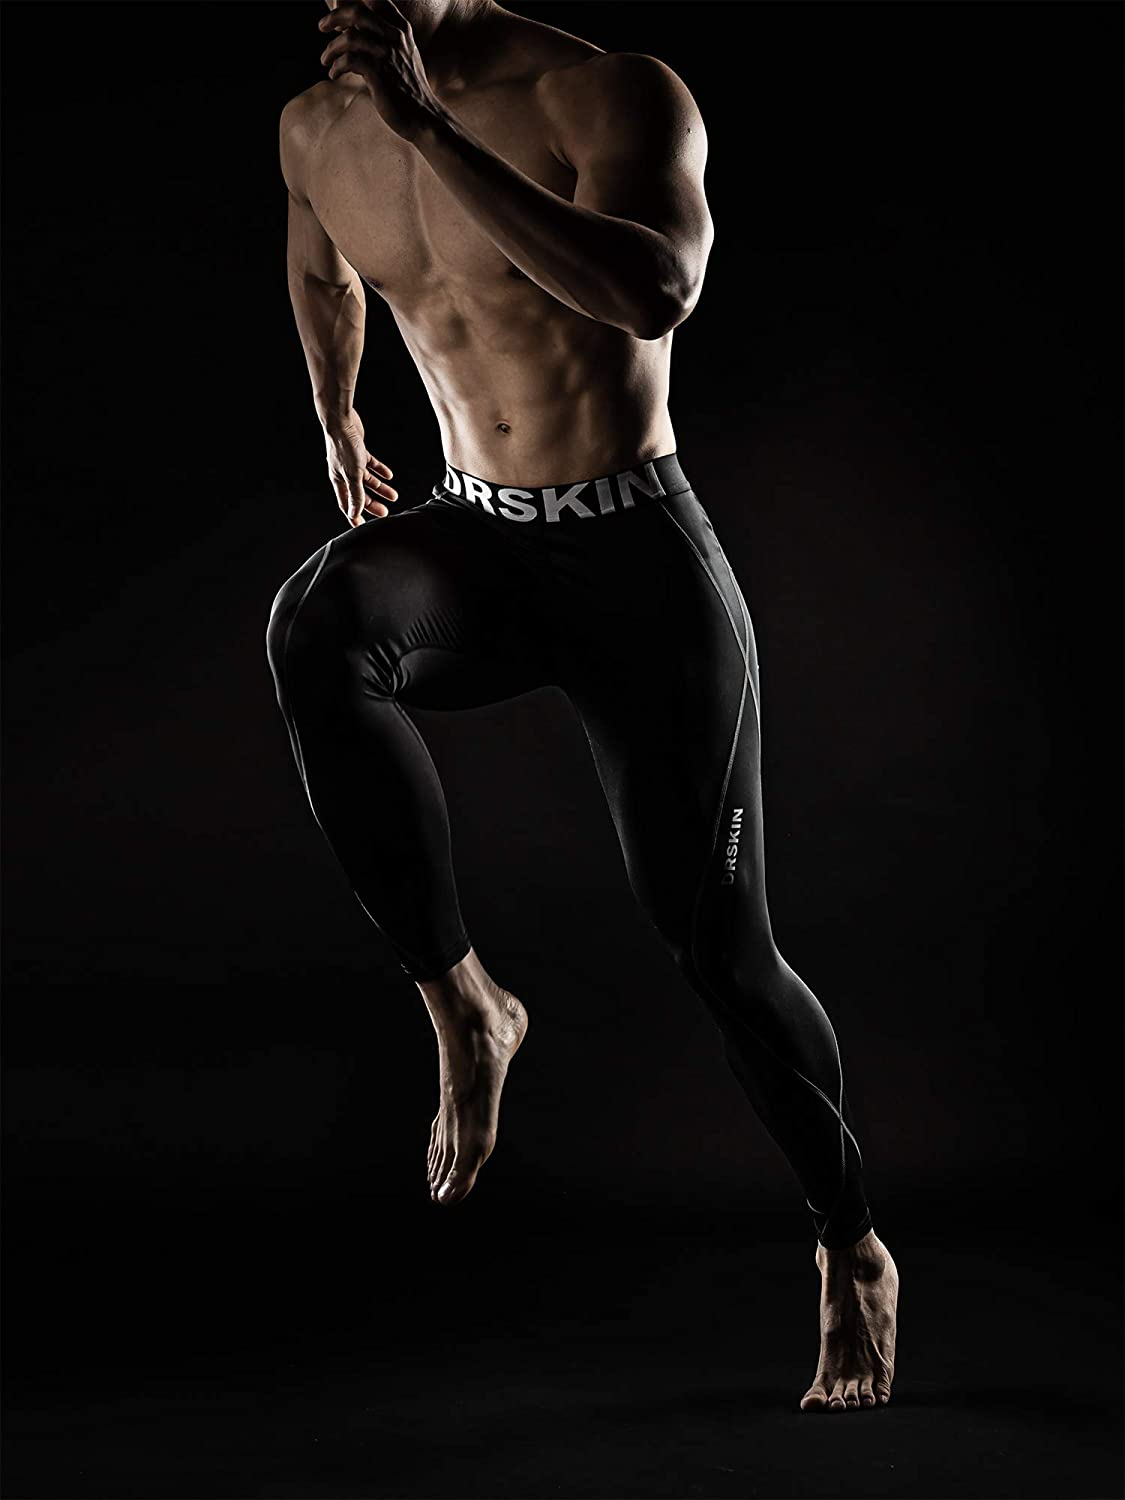 DRSKIN Men/'s Compression Warm Dry Cool Sports Tights Pants Baselayer Running Leggings Yoga